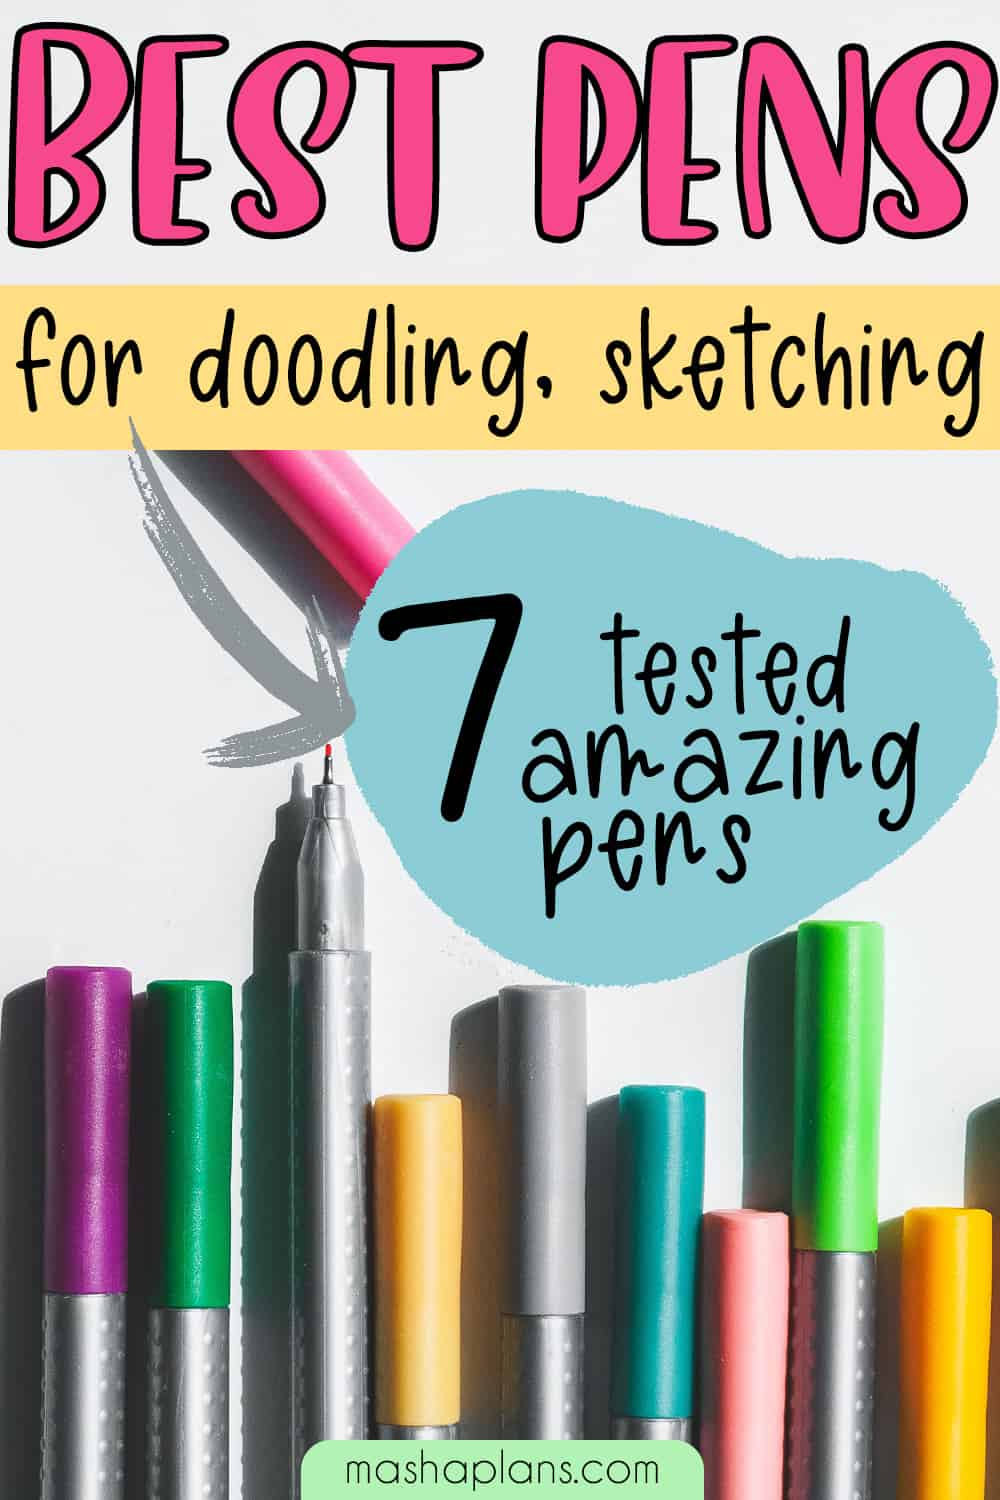 7 Best Pens For Doodling, Sketching and Drawing | Masha Plans